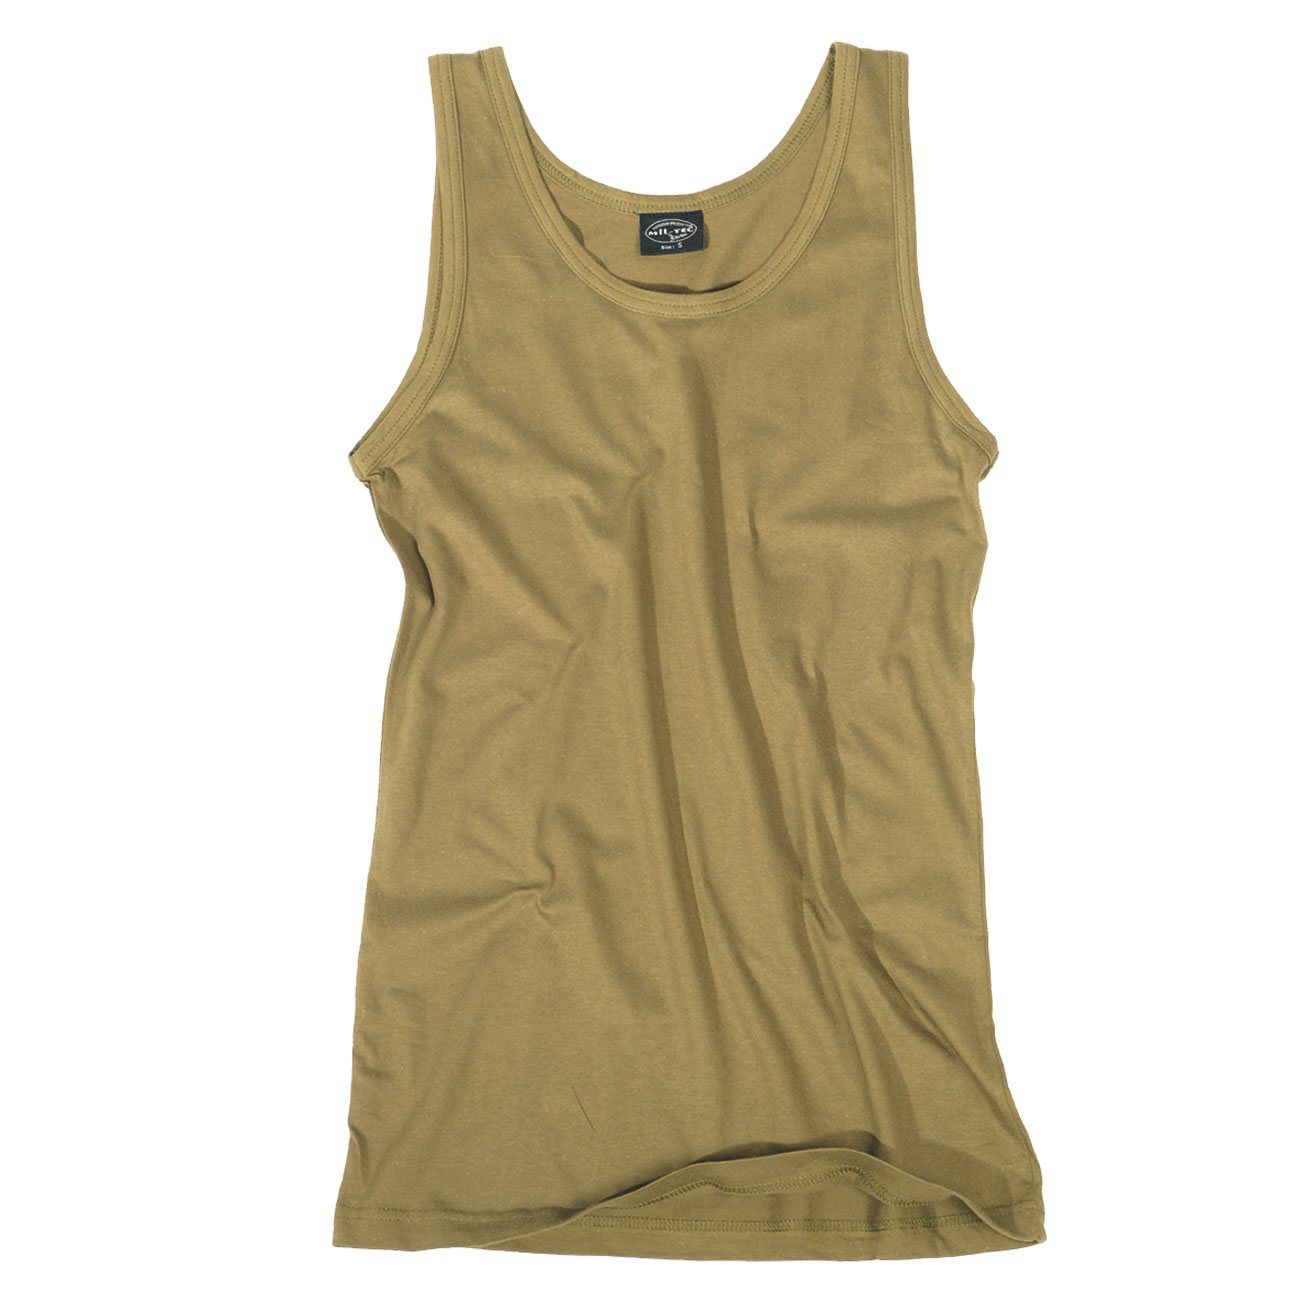 Tank Top, Muskelshirt, coyote 0